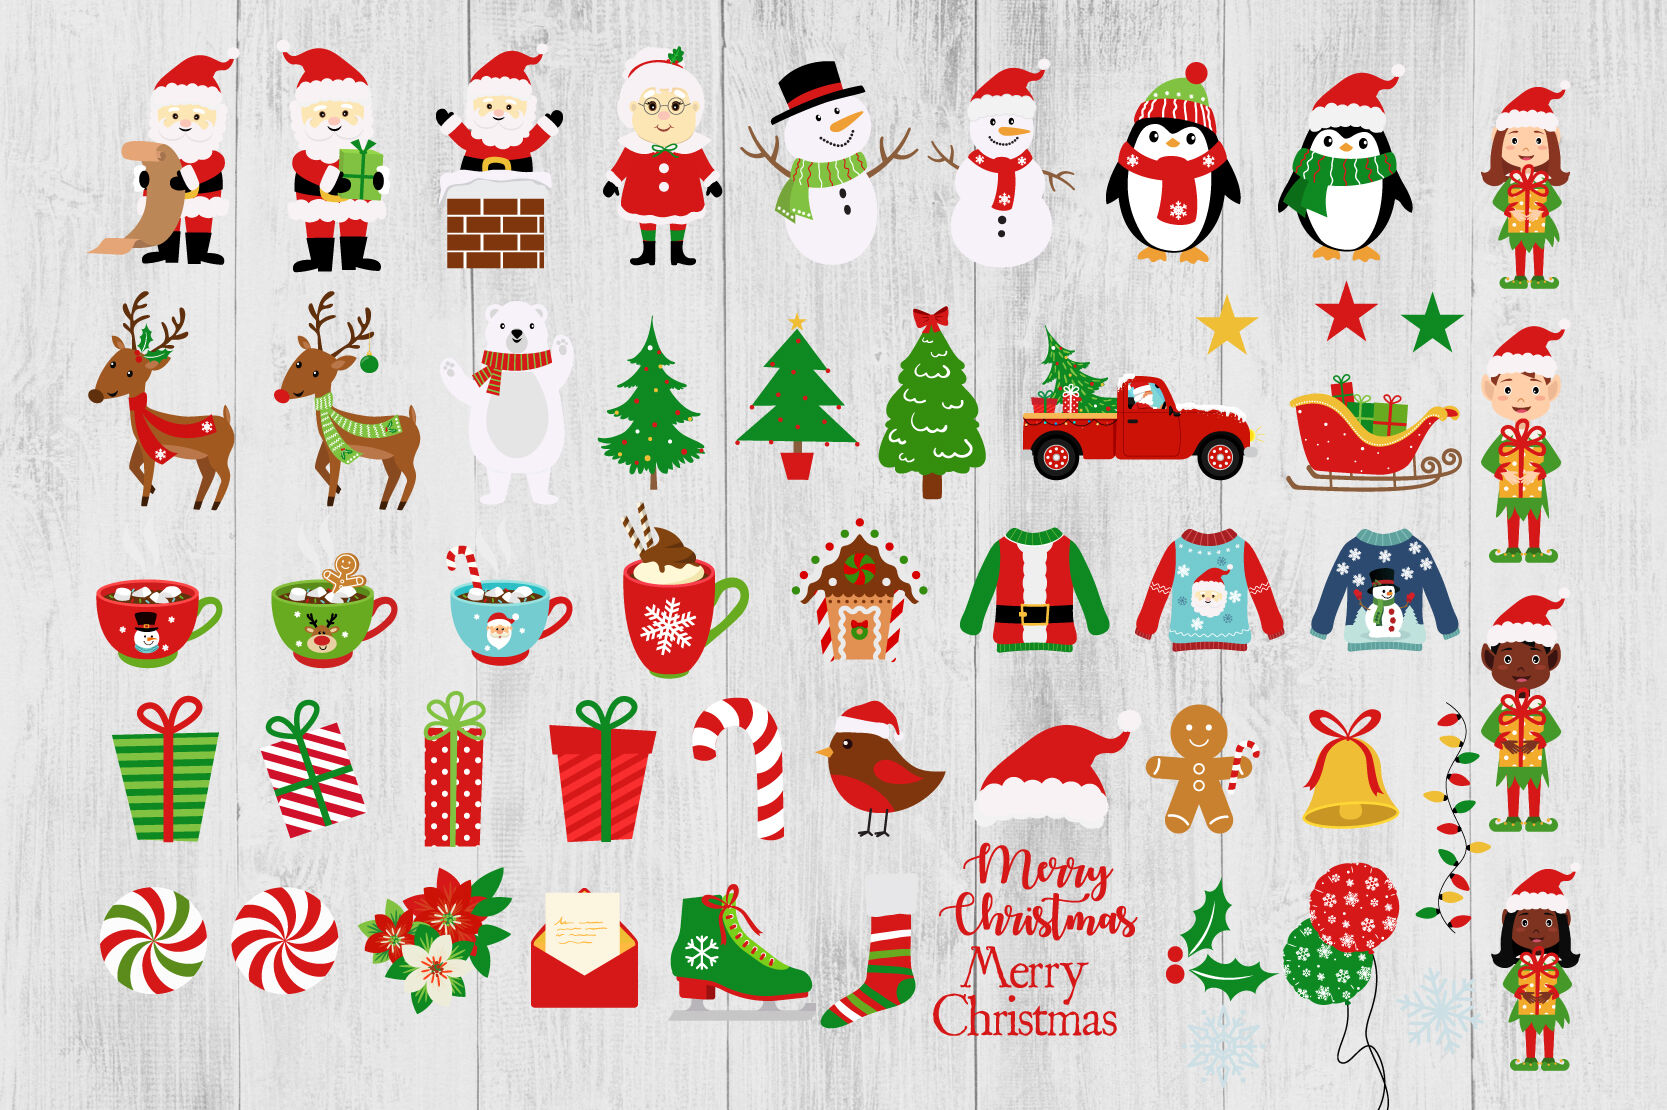 christmas clipart holiday clipart set cute christmas clip art santa by twingenuity graphics thehungryjpeg com the hungry jpeg